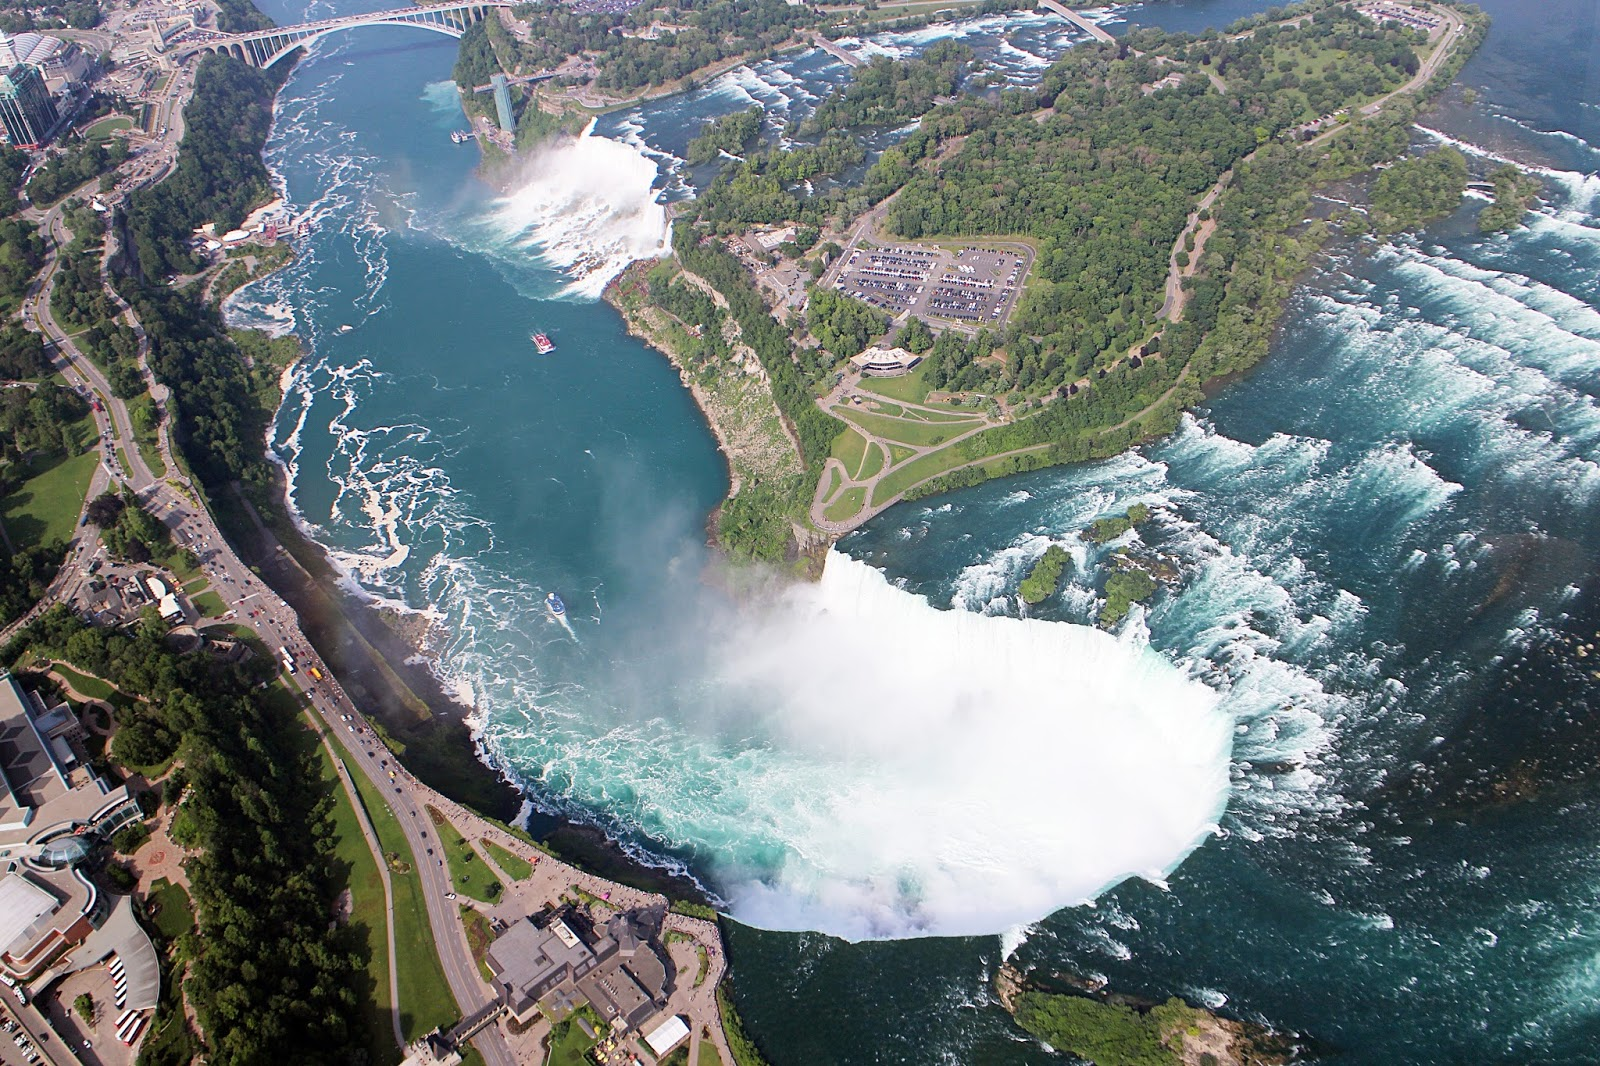 Helicopter ride over Niagara Falls, Canada